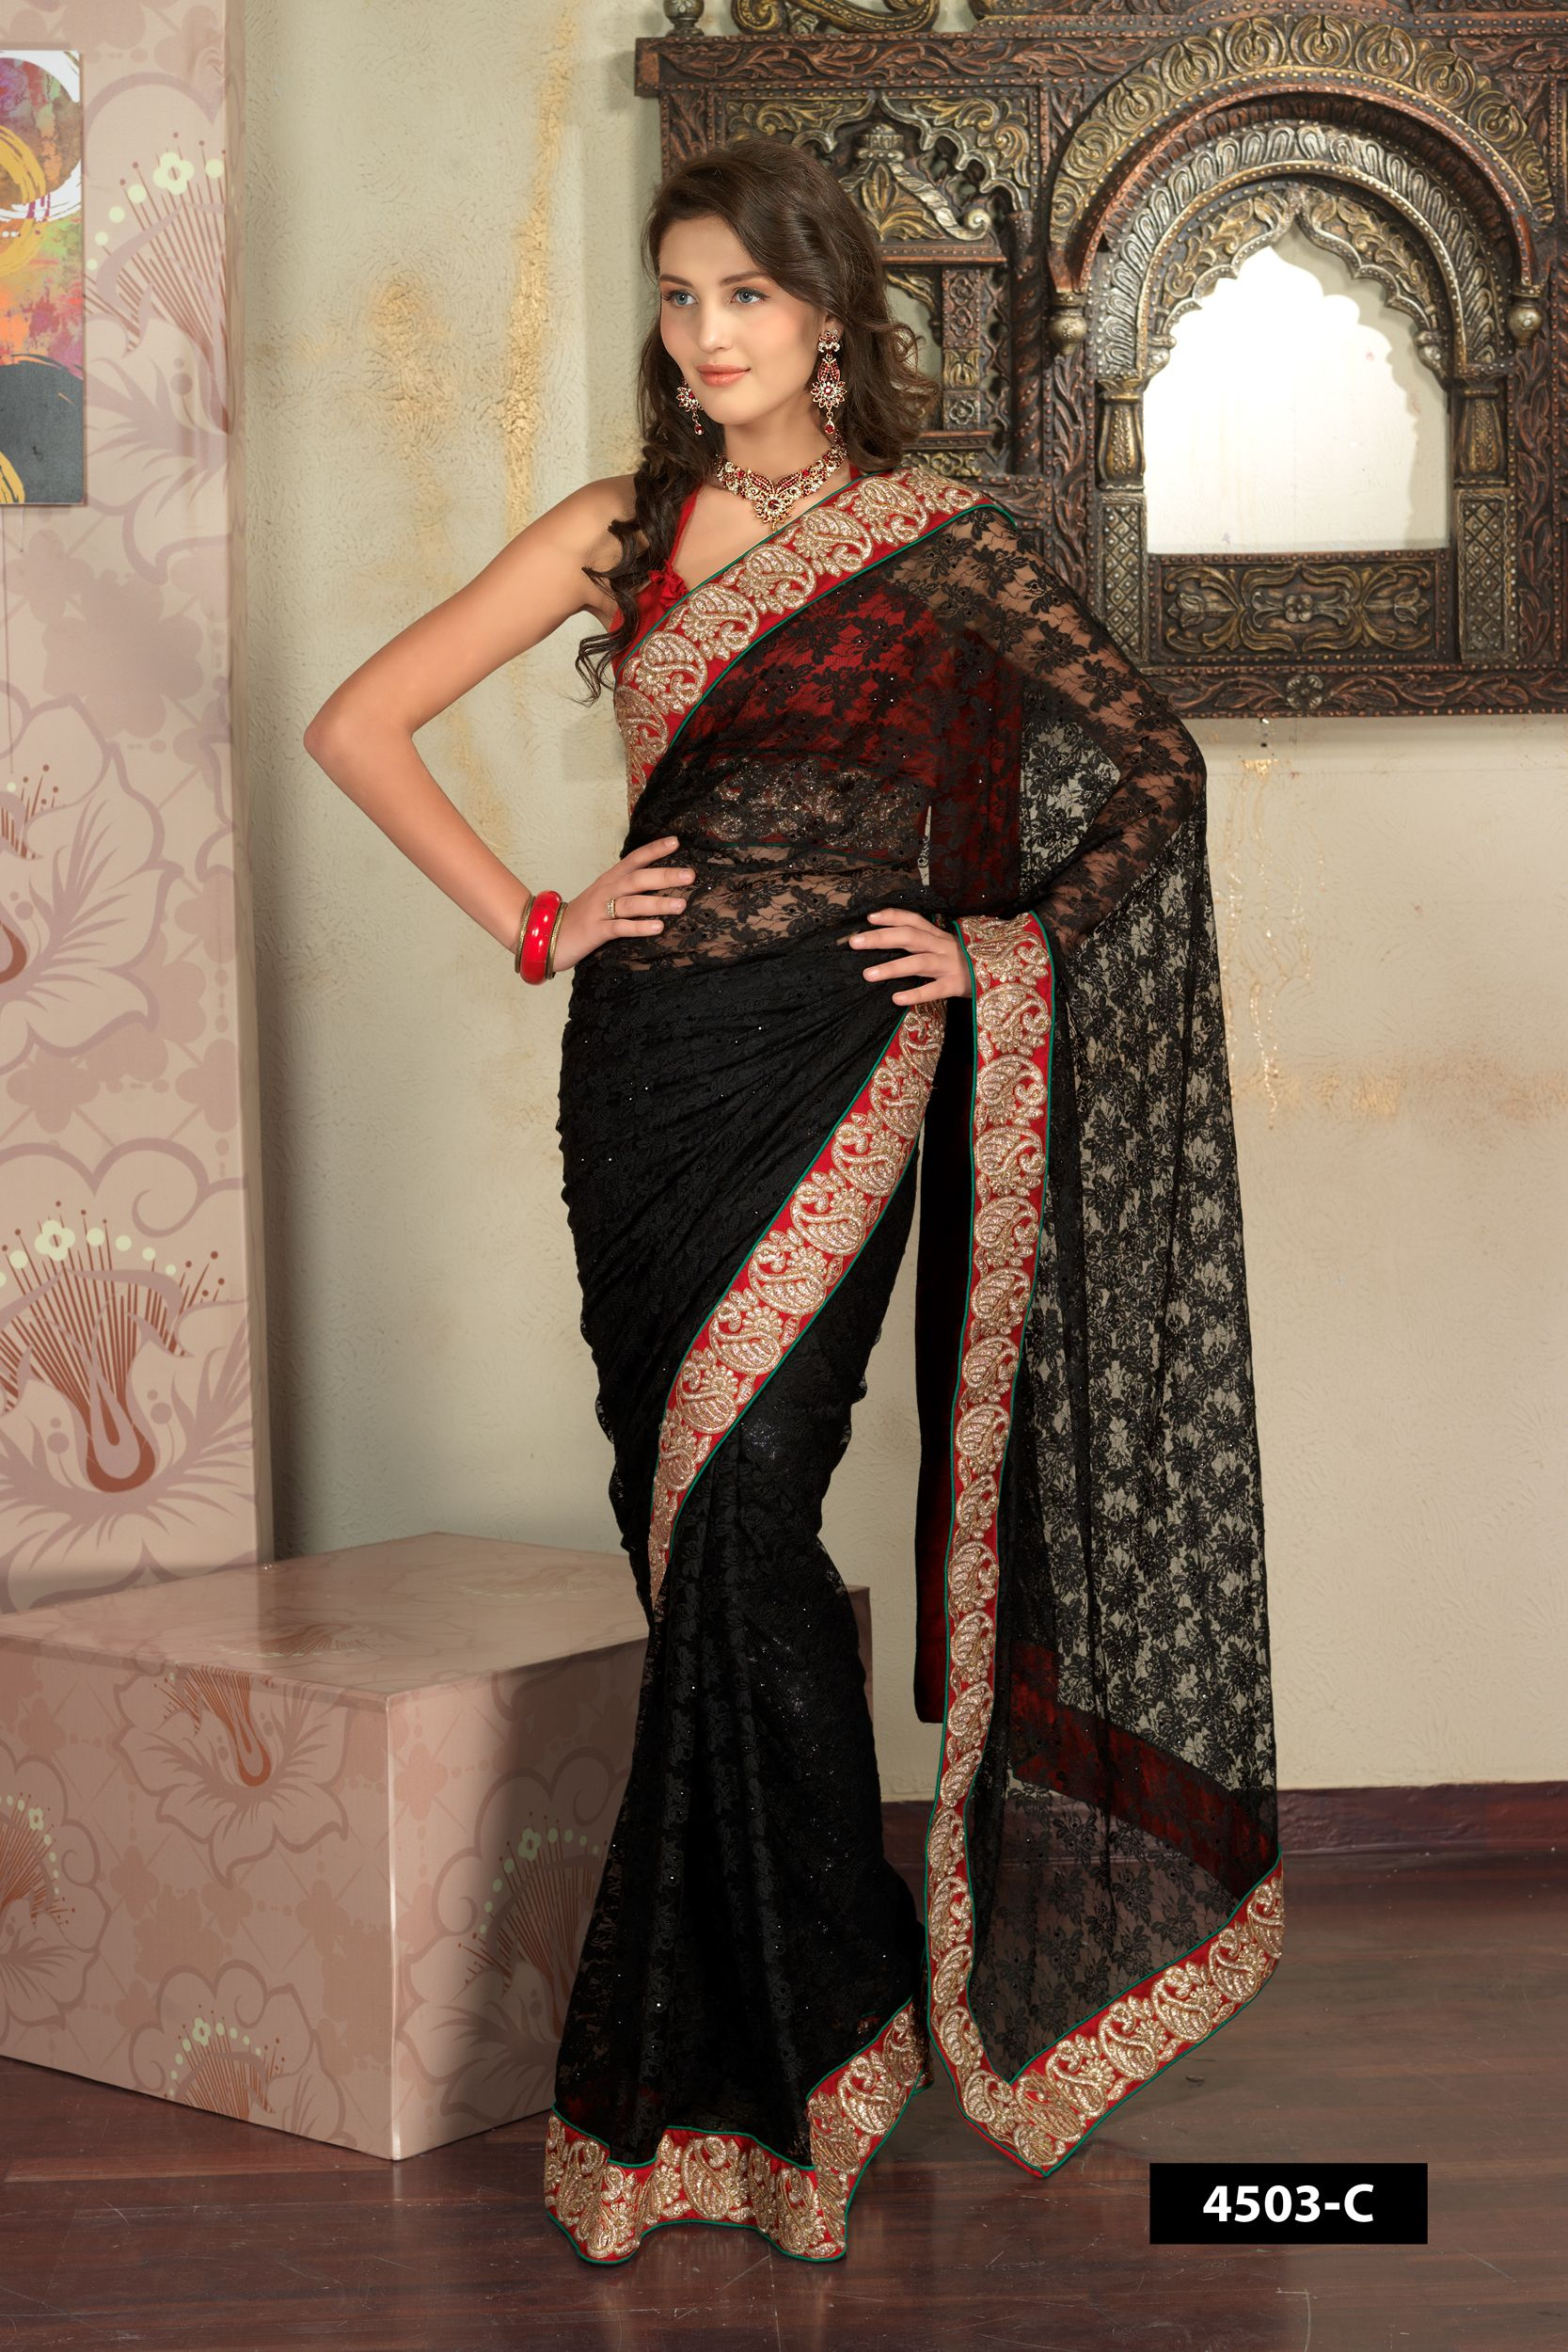 5ee1f6c3a1 Full net black designer saree with golden heavy embroidery border comes  with pink blouse